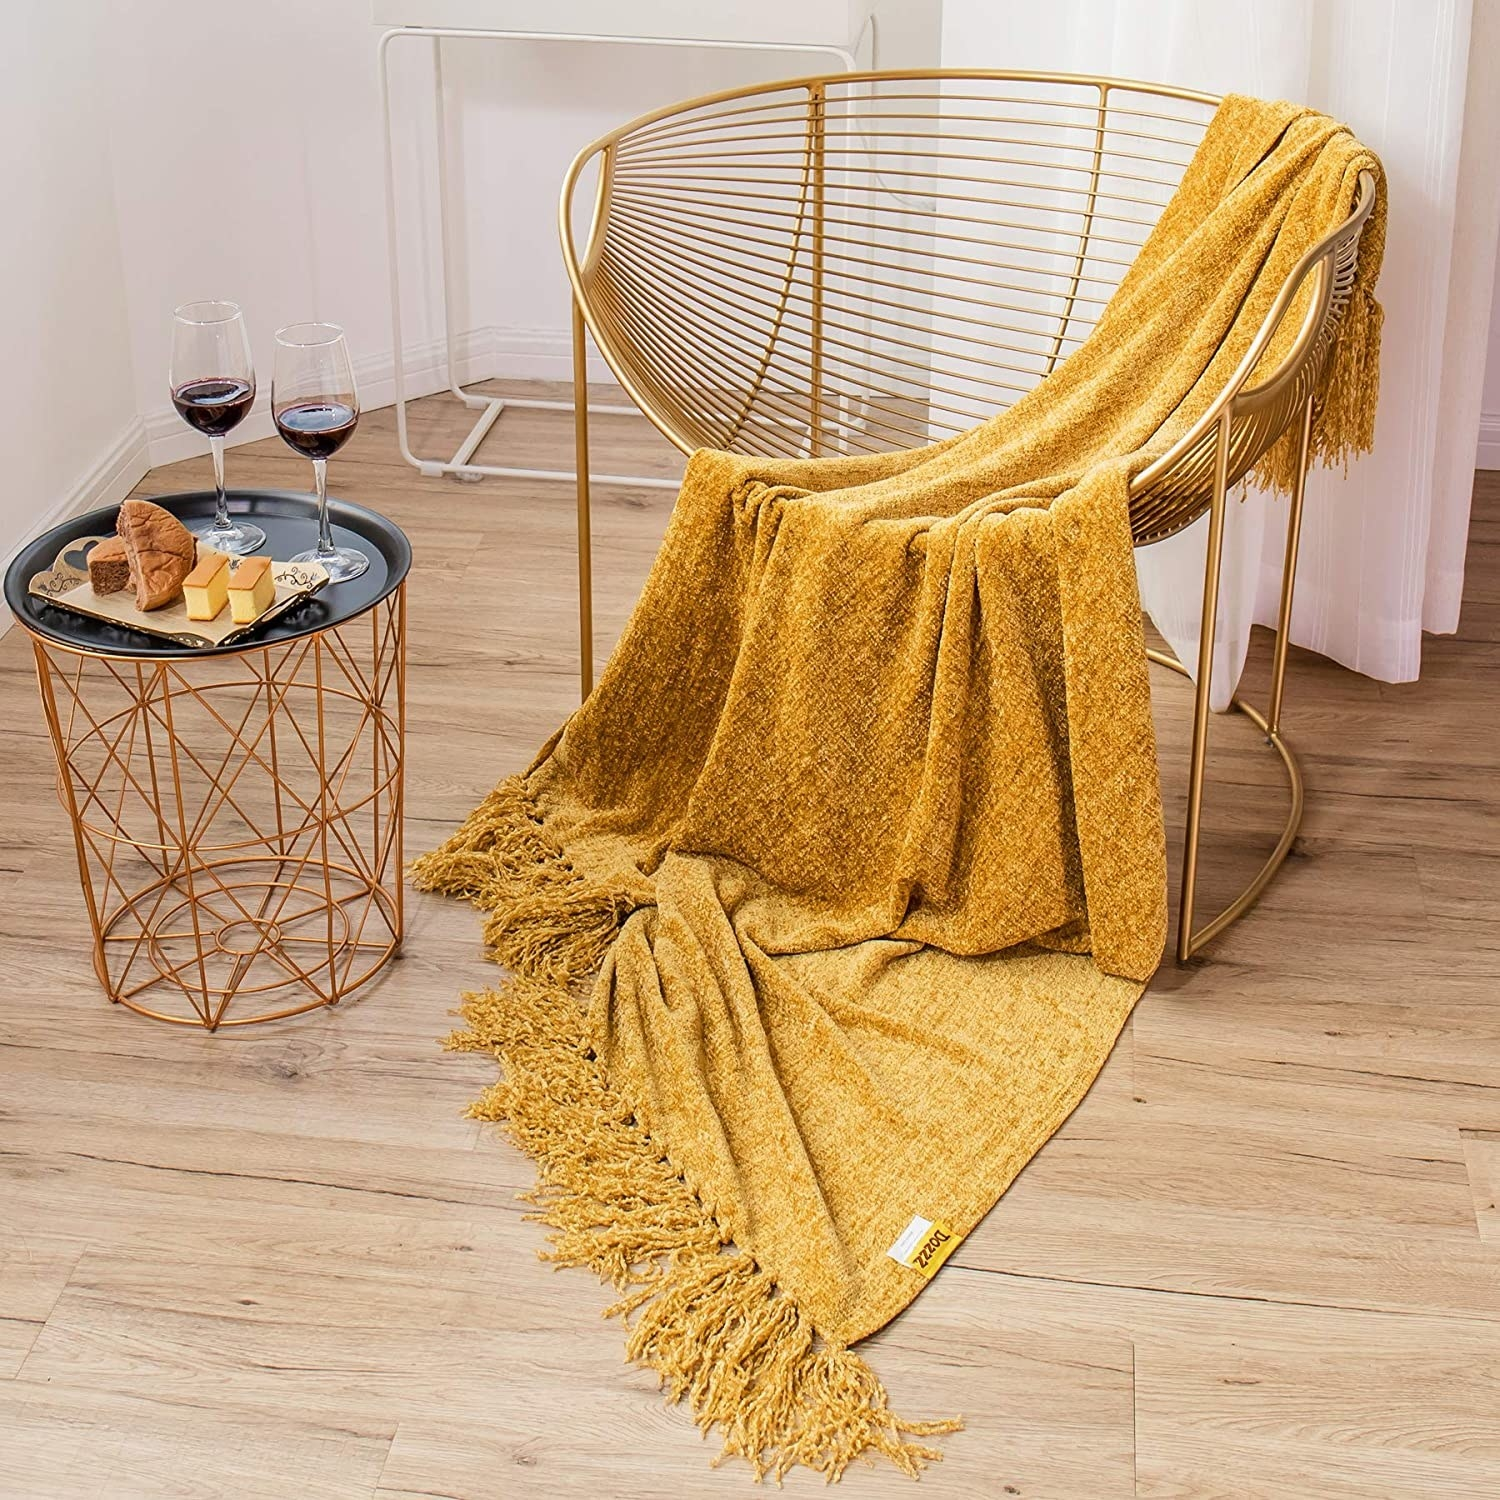 modern chair with a golden yellow chenille throw blanket on it